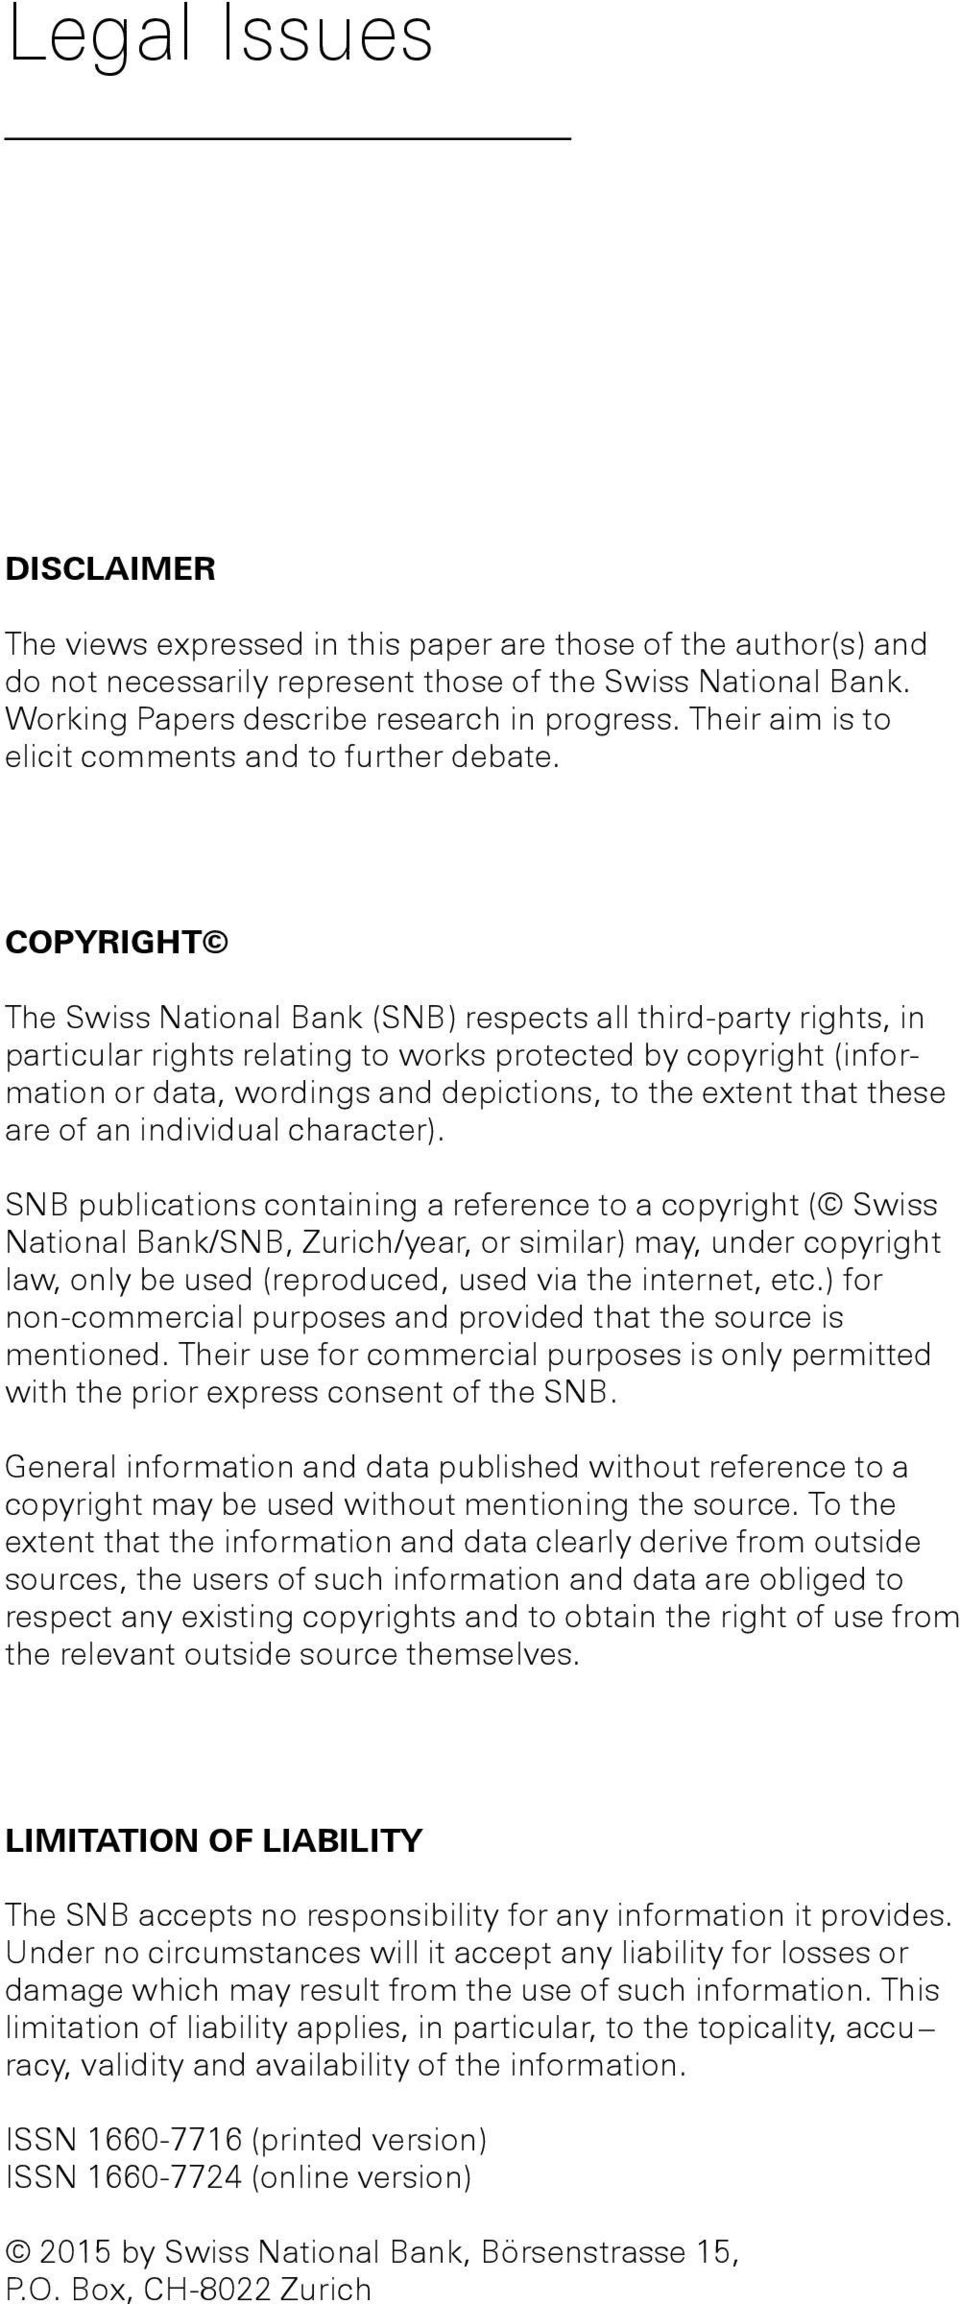 Copyright The Swiss National Bank (SNB) respects all third-party rights, in particular rights relating to works protected by copyright (information or data, wordings and depictions, to the extent